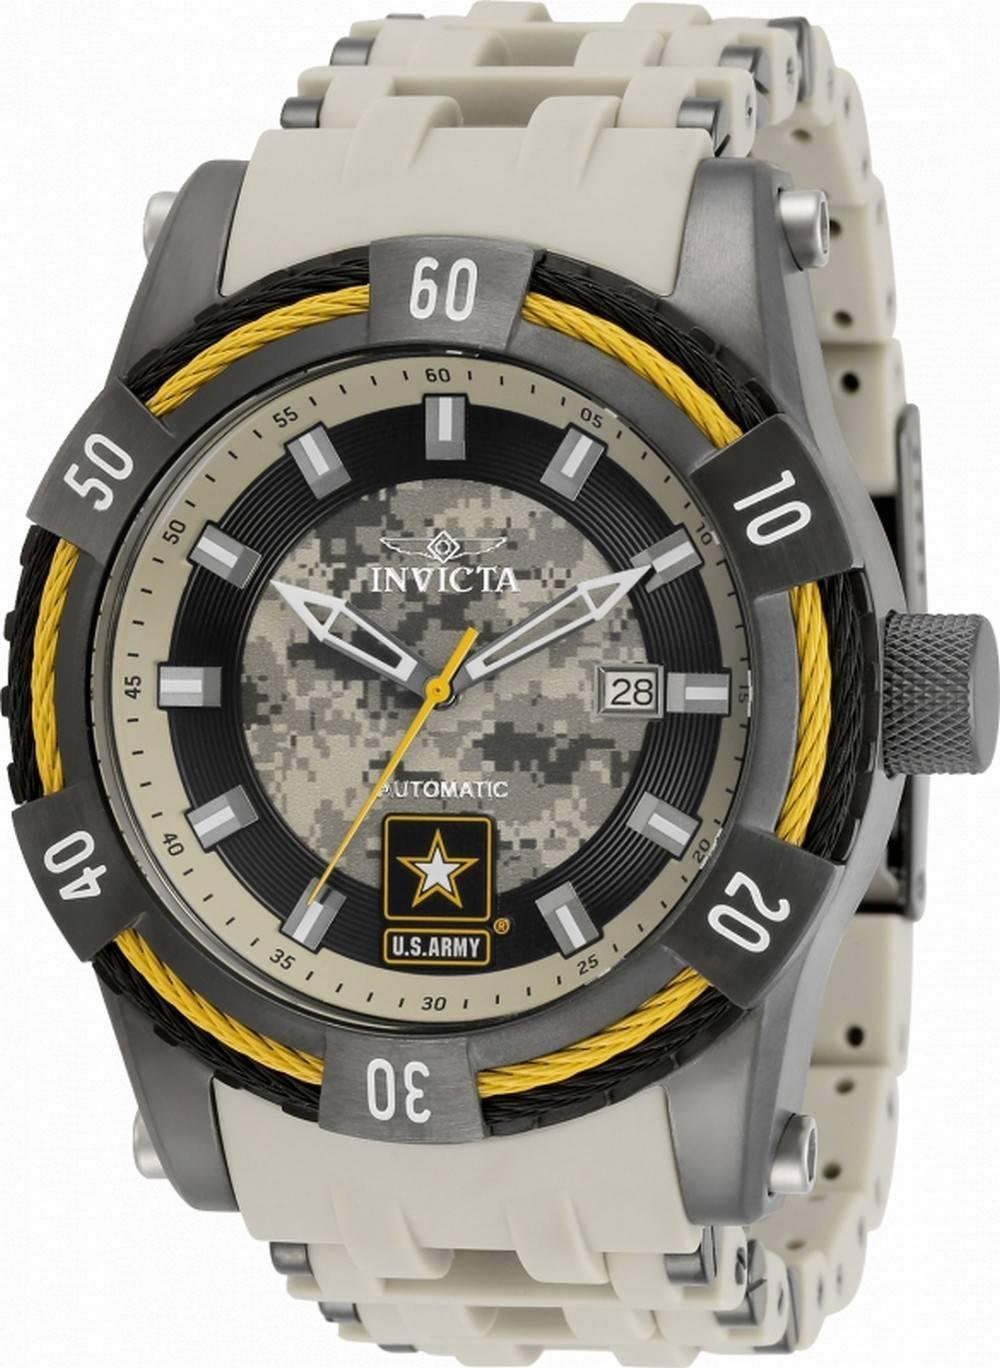 Invicta US Army Tarnzifferblatt Automatik 34108 100M Herrenuhr